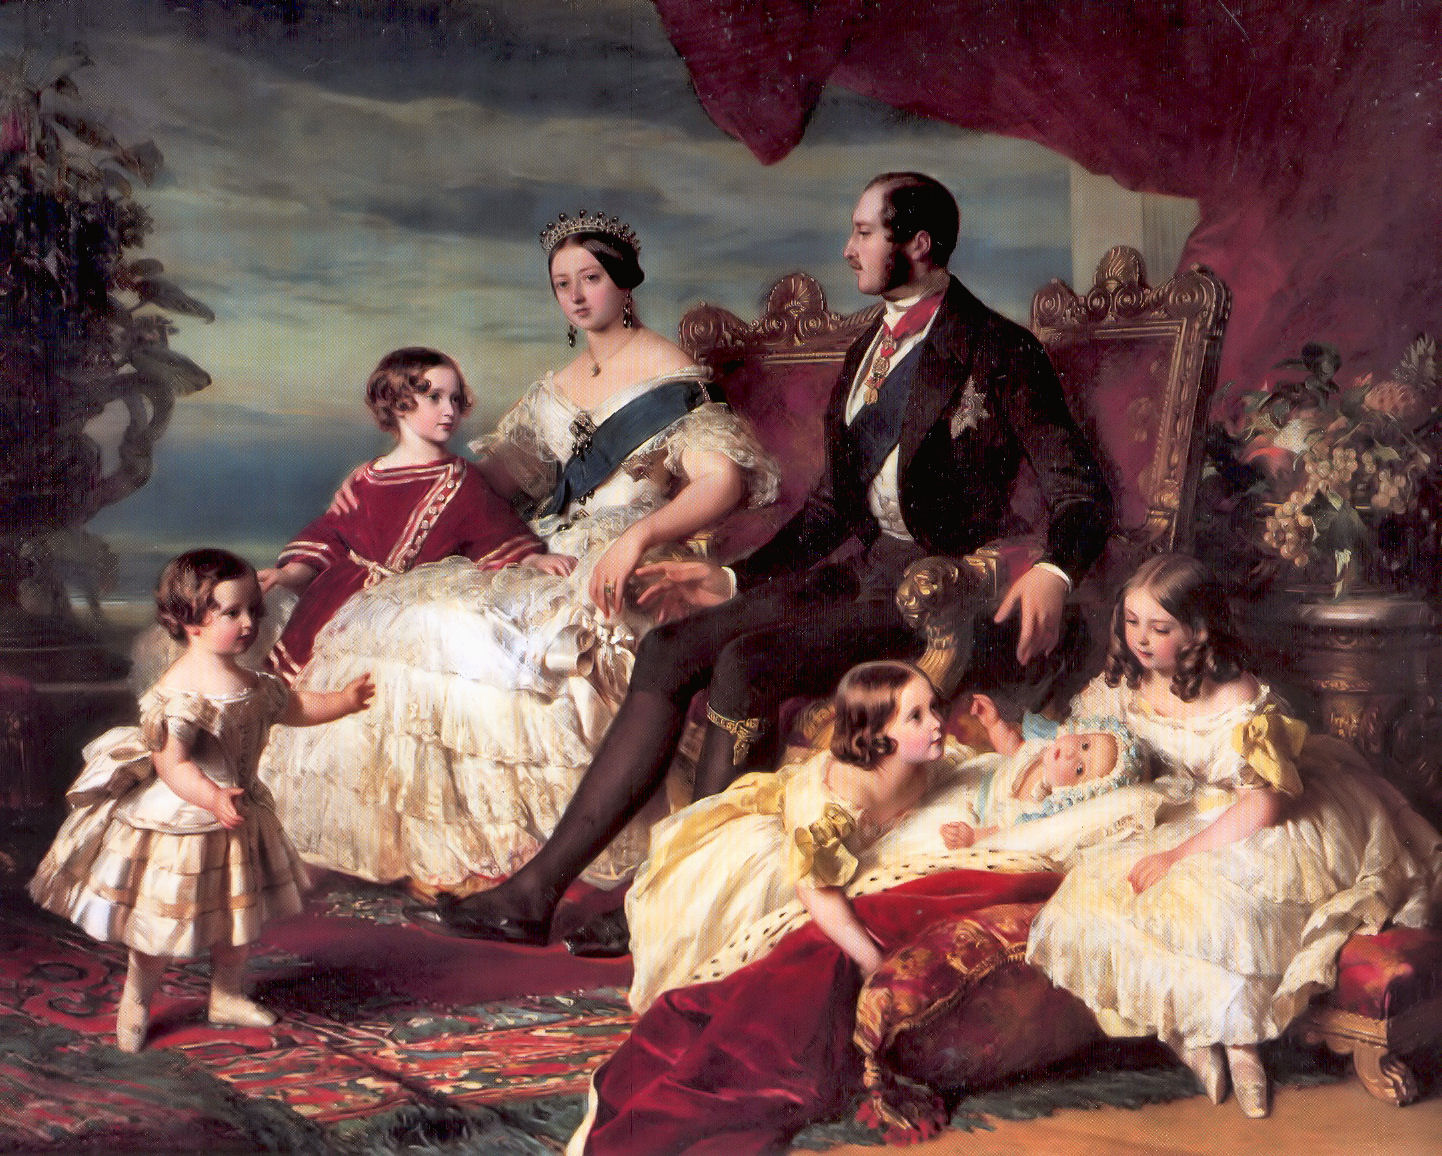 Franz_Xaver_Winterhalter_Family_of_Queen_Victoria.jpg